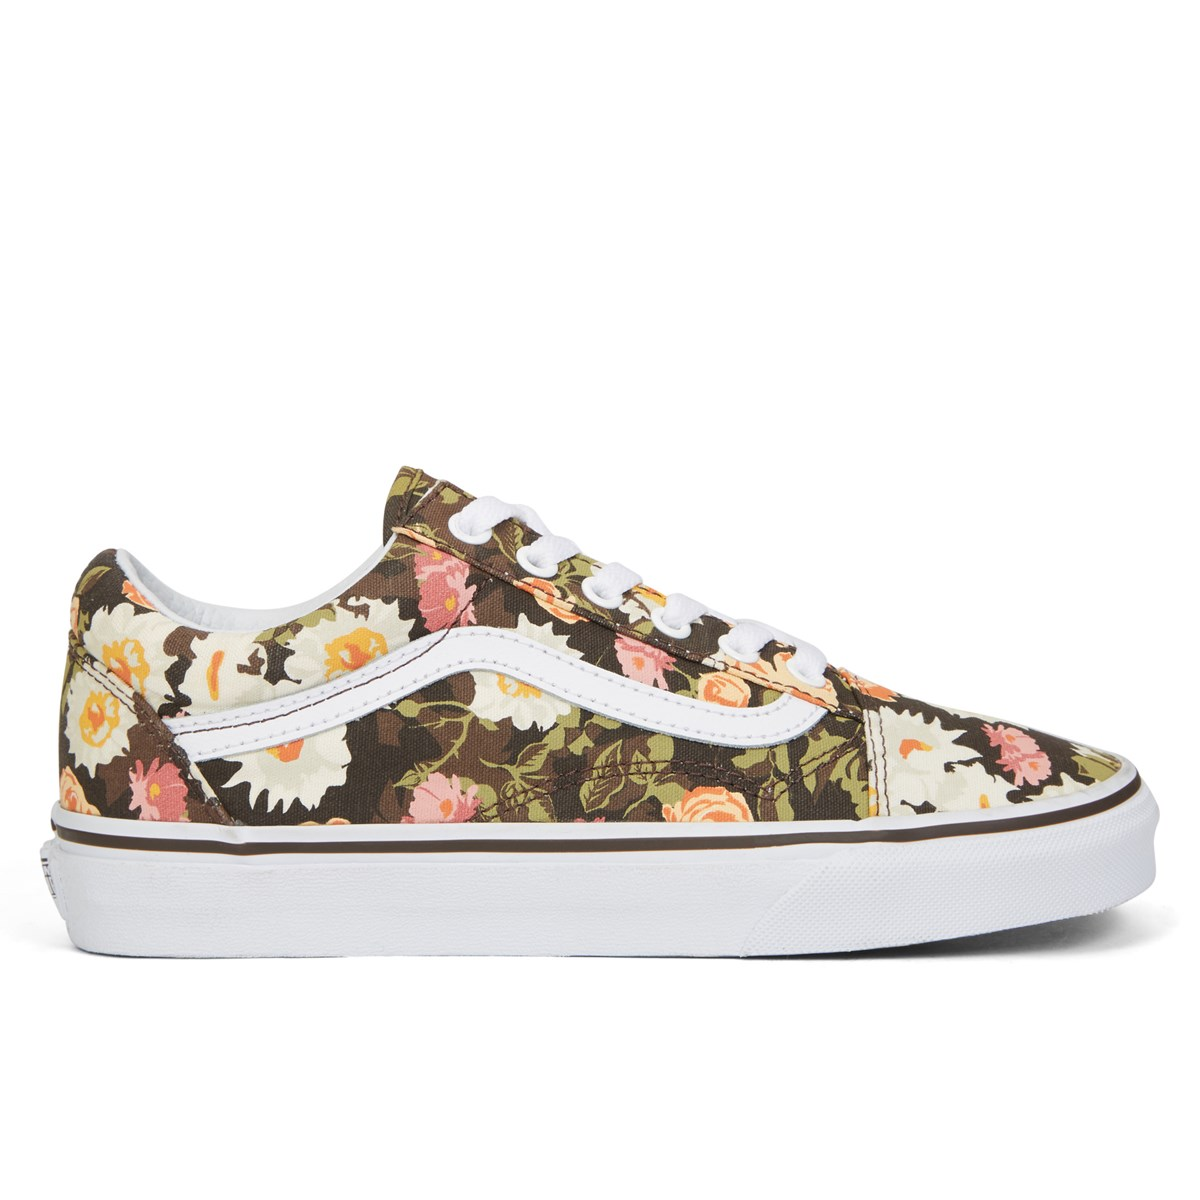 4d1cdcc09ae43 Women's Old Skool Floral Print Sneaker. Previous. default view; ALT1; ALT2